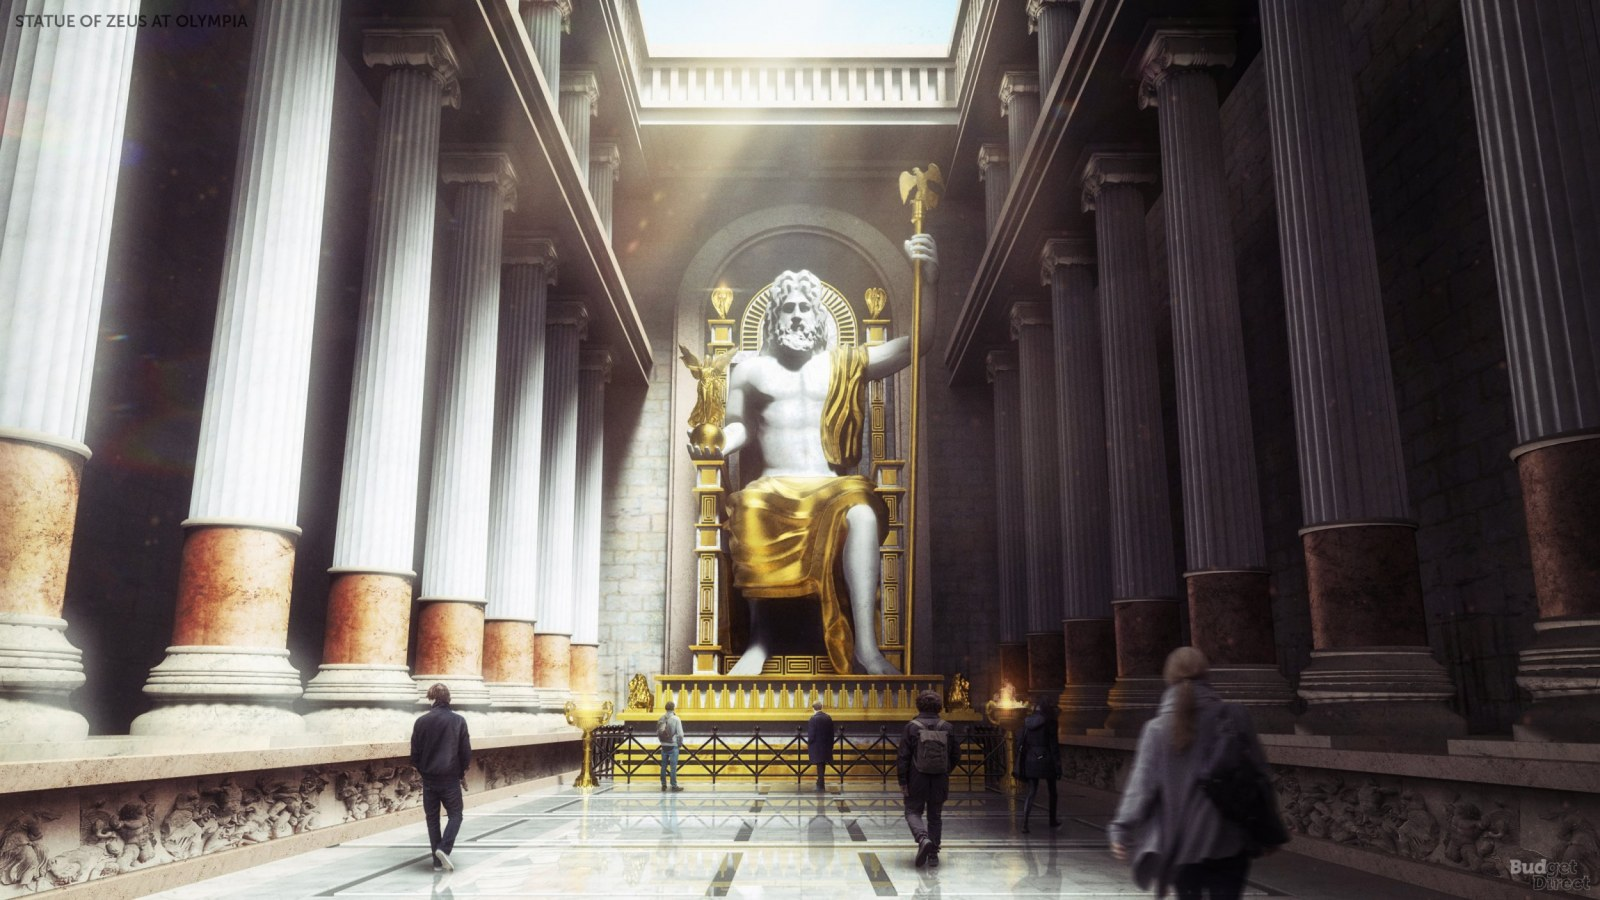 The Seven Wonders of the Ancient World Digitally Reconstructed 1600x900